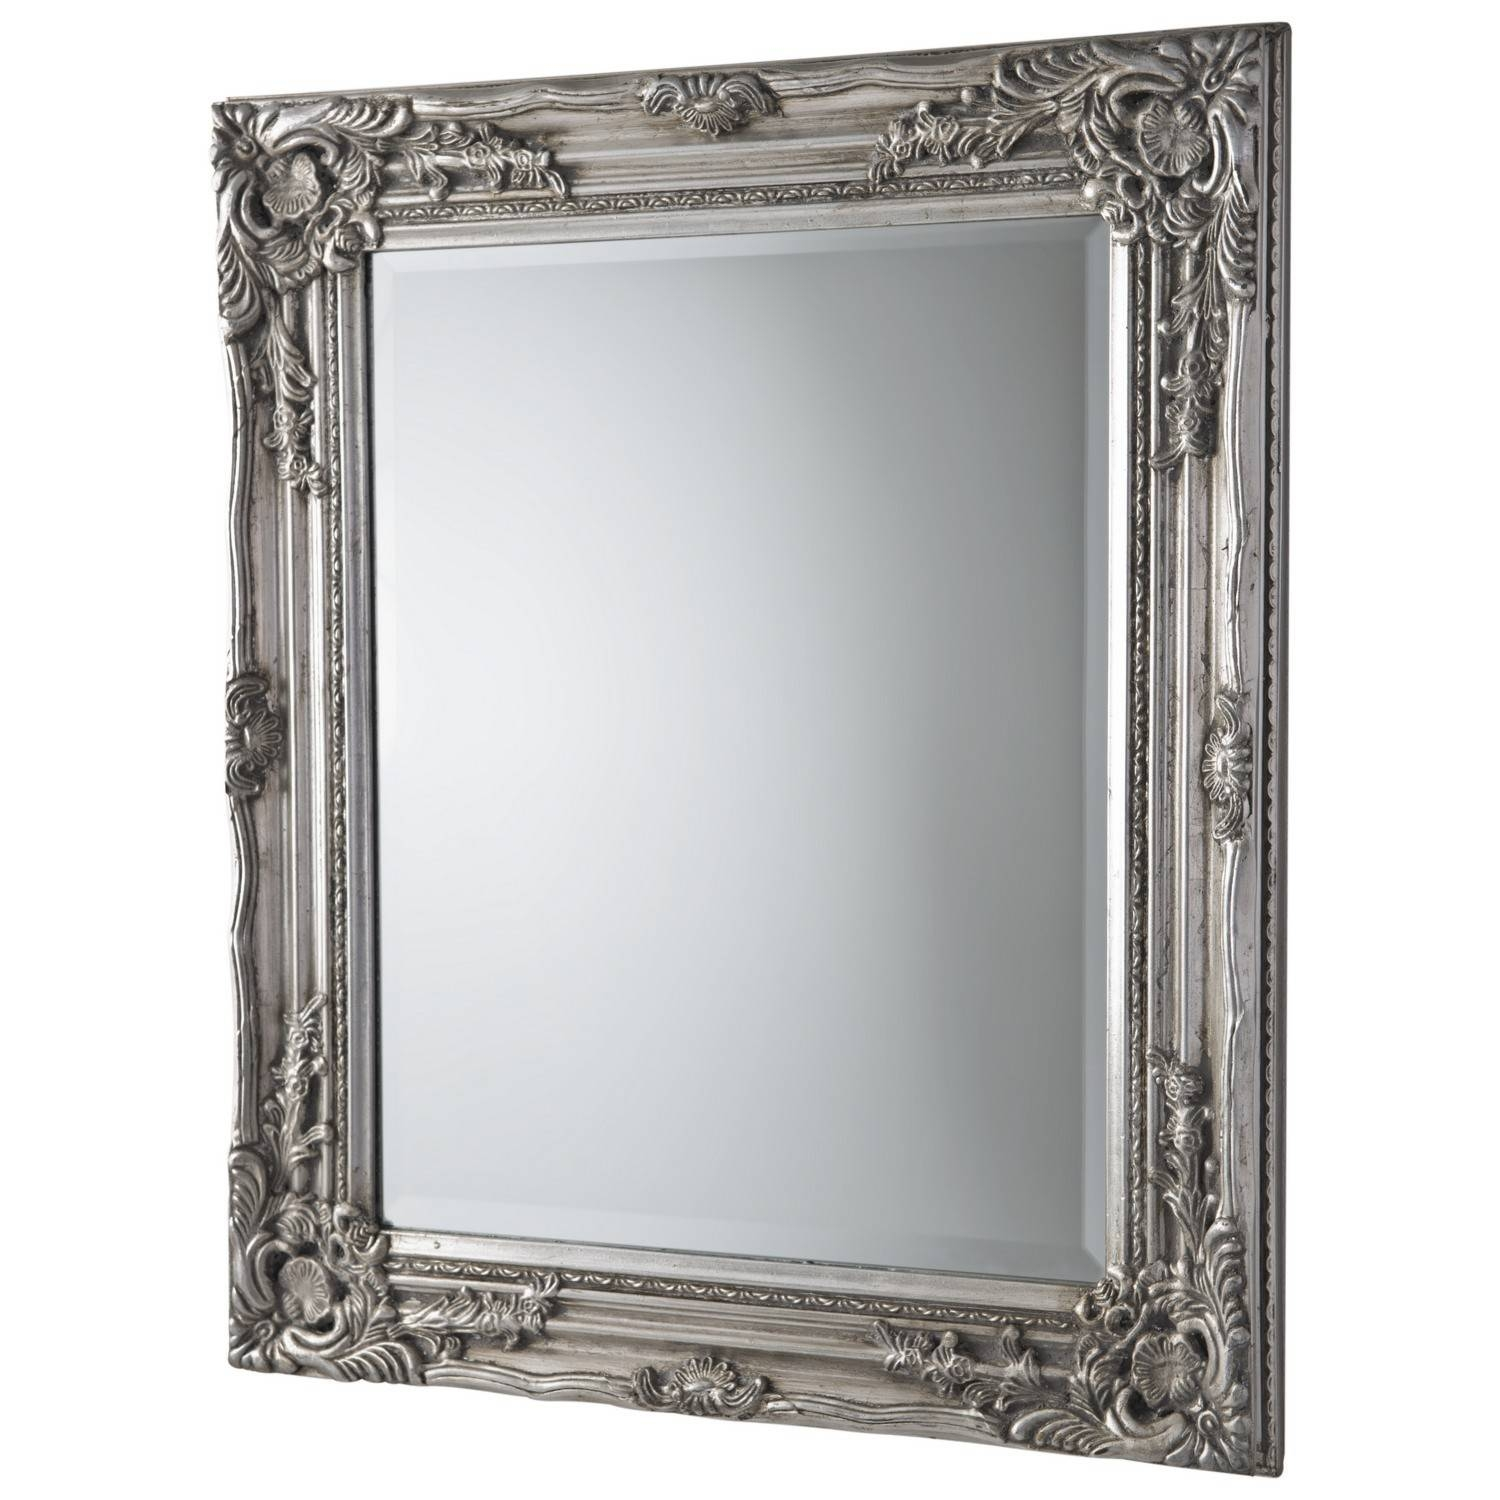 Antique Ornate Mirror Silver pertaining to Silver Ornate Framed Mirrors (Image 3 of 25)